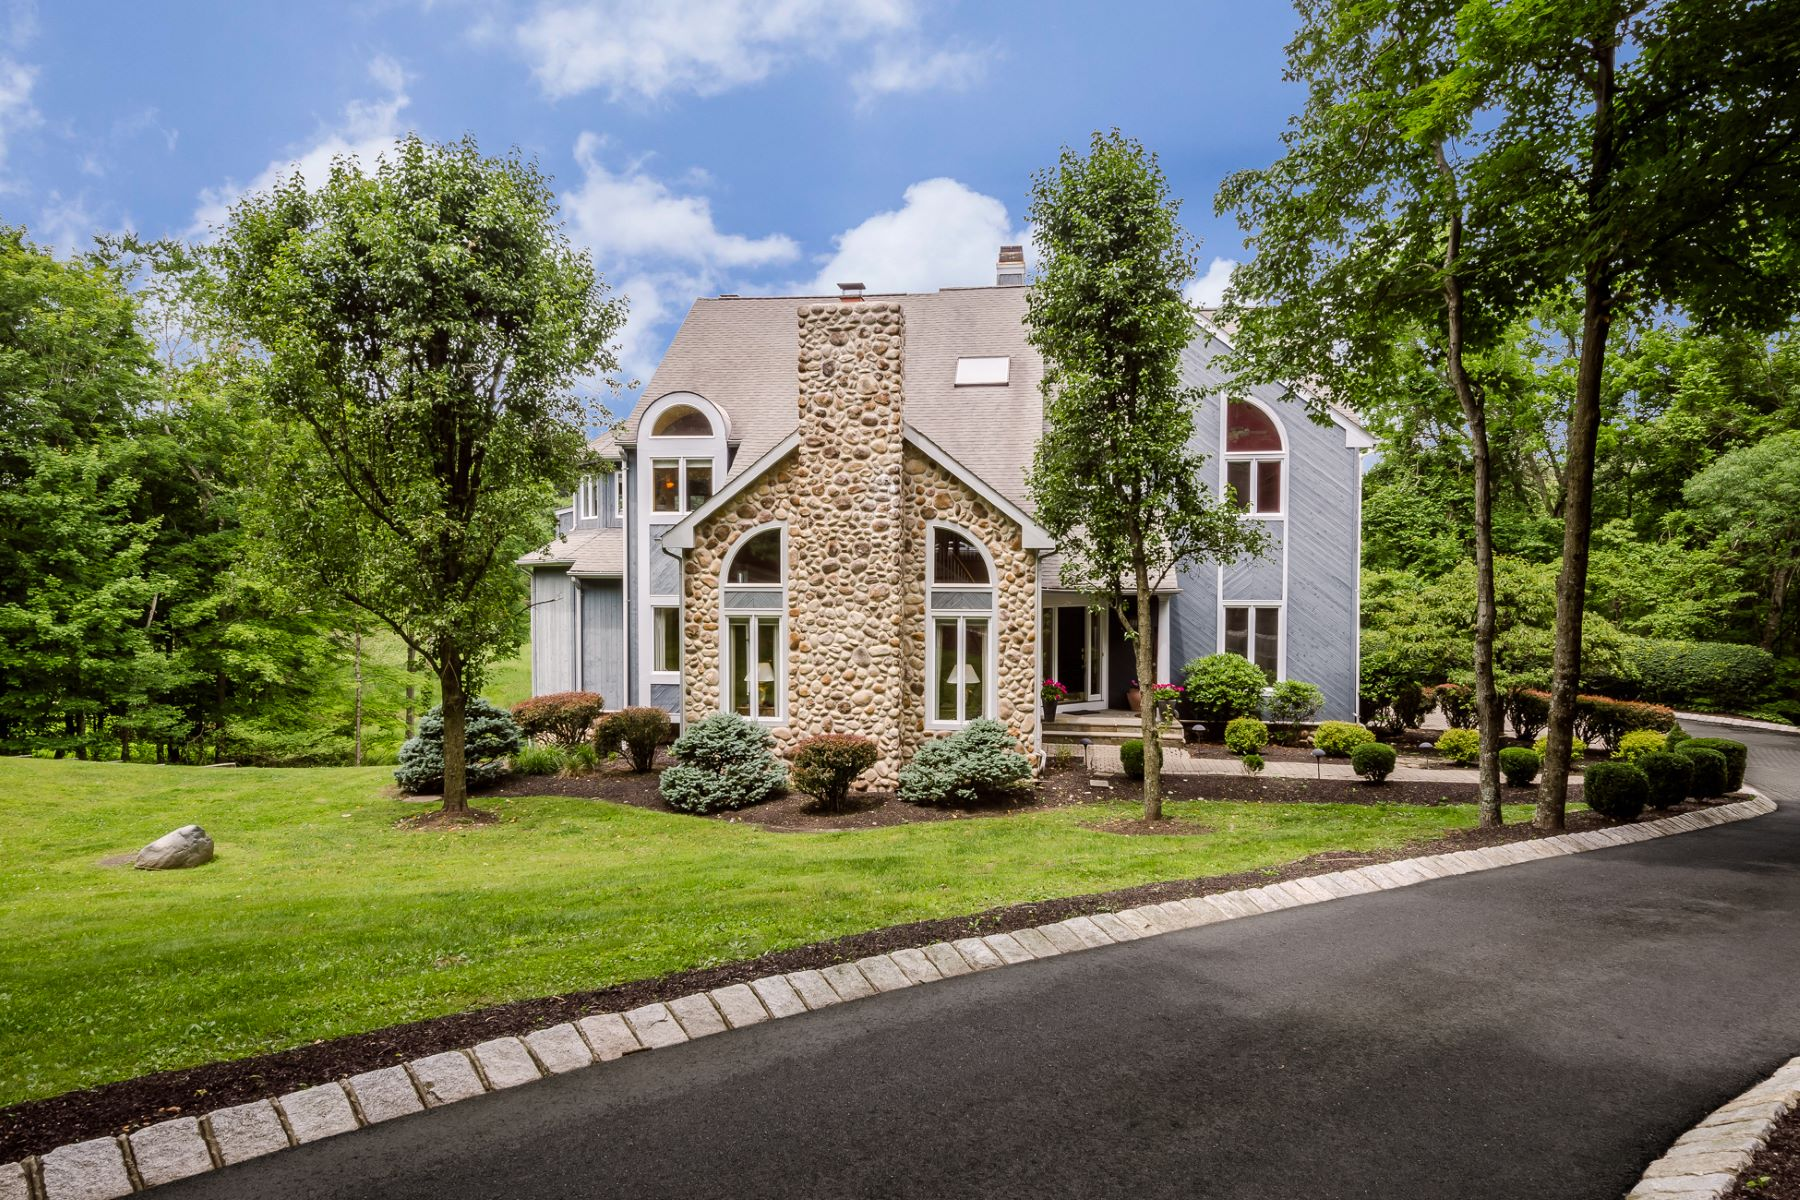 Single Family Homes for Sale at Beautiful Custom Home With Picture Perfect Views 12 Pond View Lane Titusville, New Jersey 08560 United States